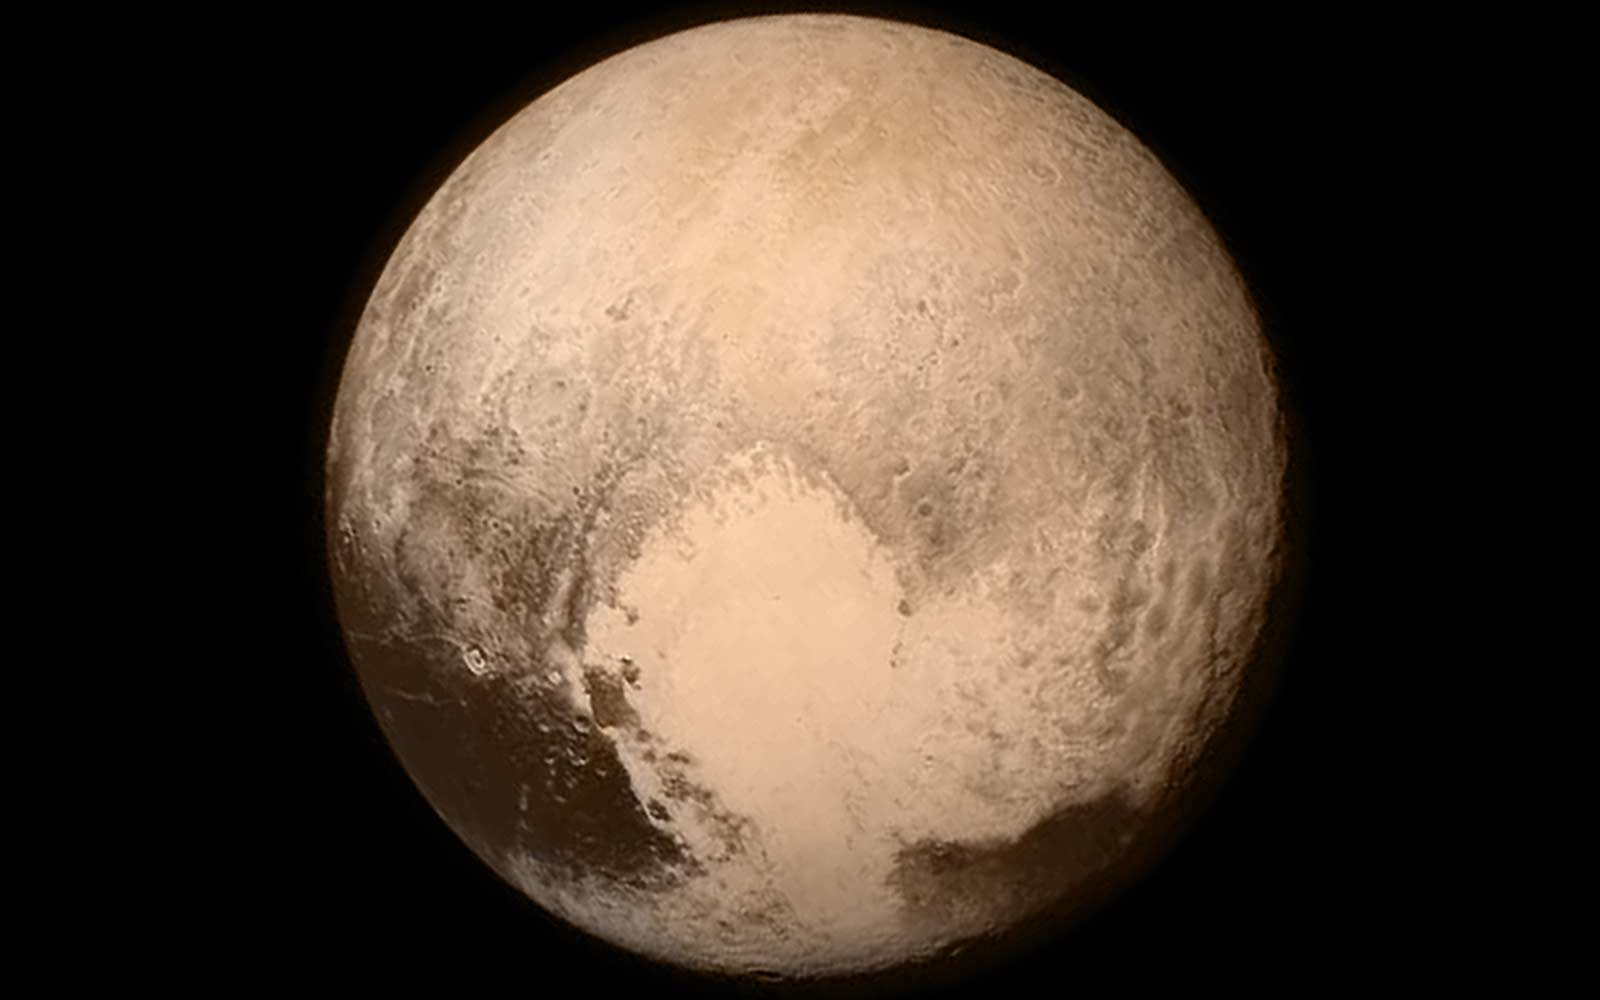 NASA releases over 100 images of Pluto